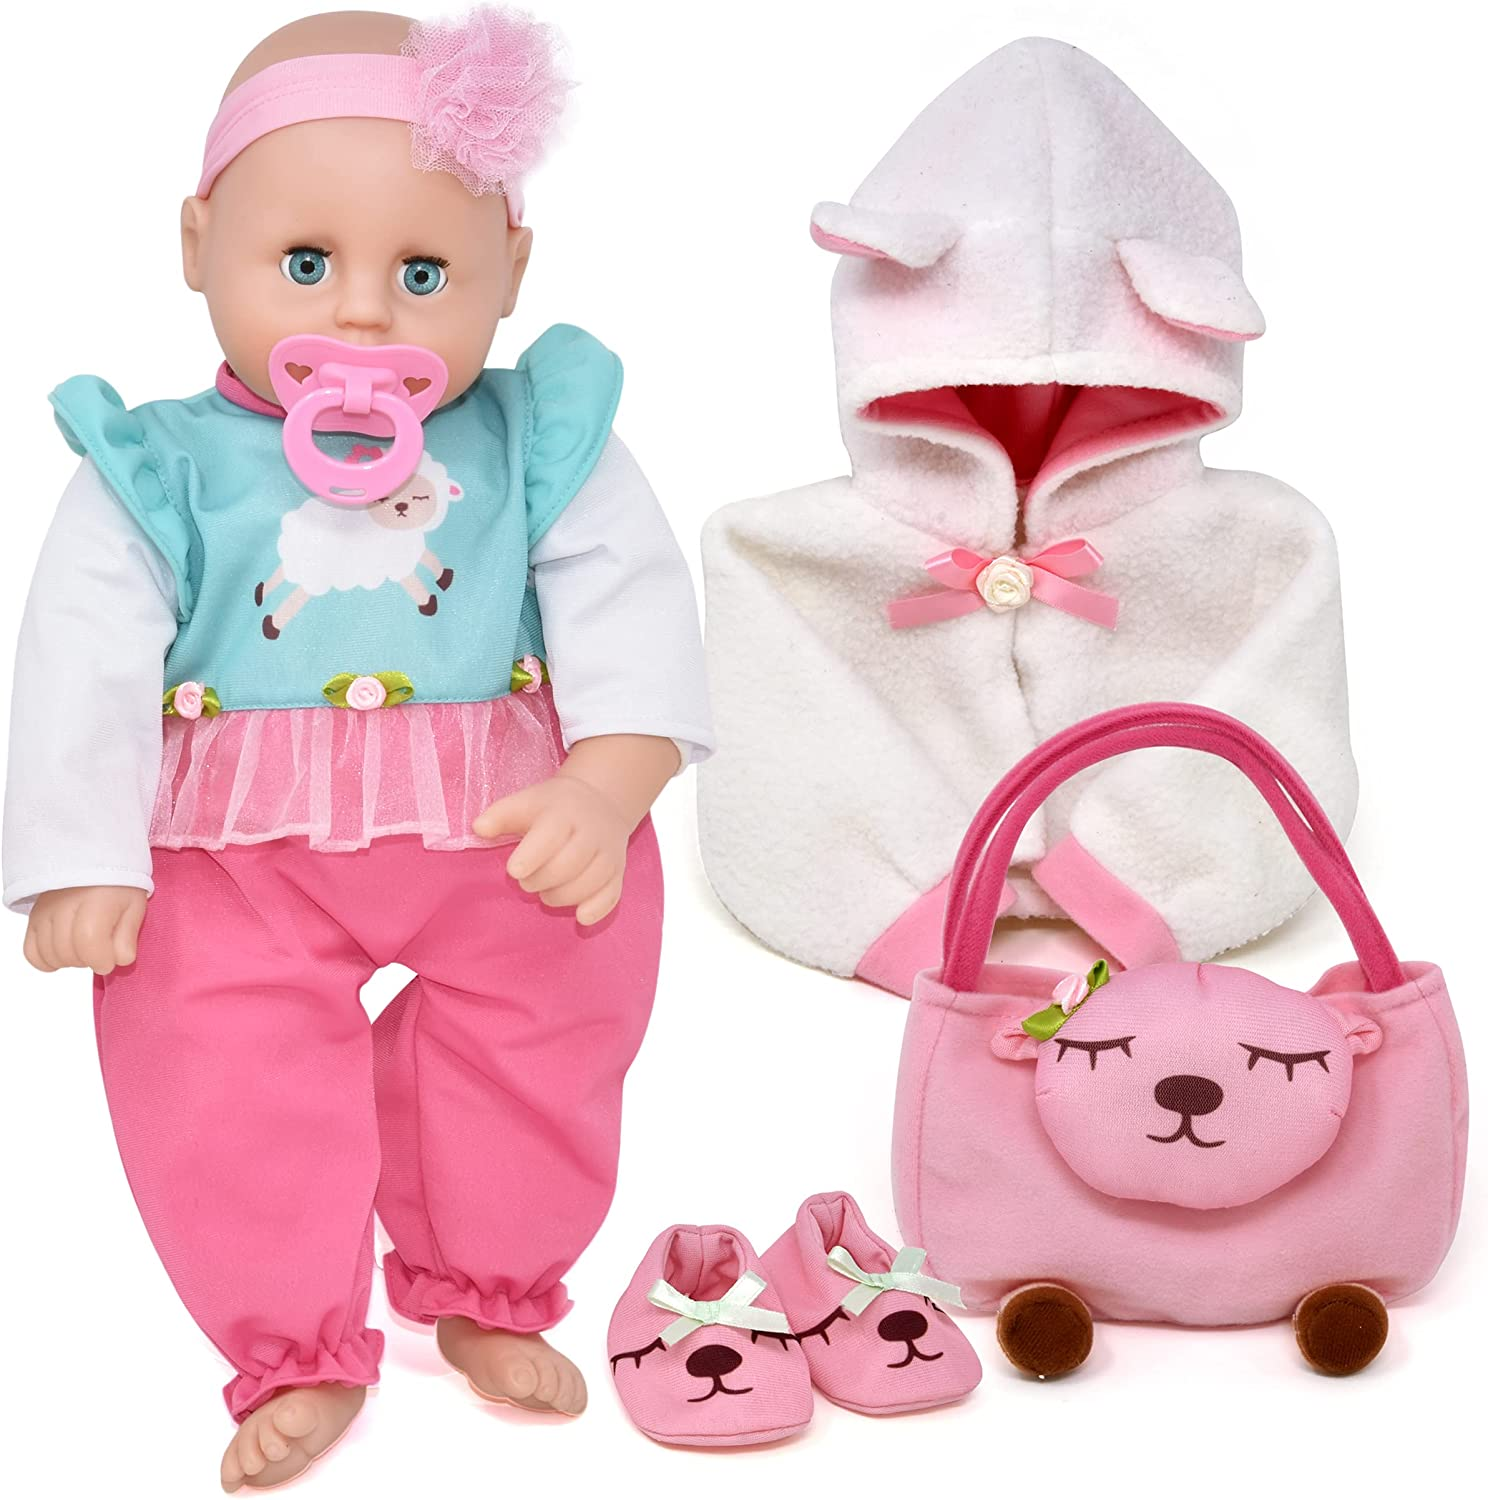 Baby Doll with Accessories Life Size Soft Body Baby Doll Set with Pacifier Diaper Bag Clothes Eyes Open Close 18 Inch Lifelike Sleeping Doll for Toddlers Kids